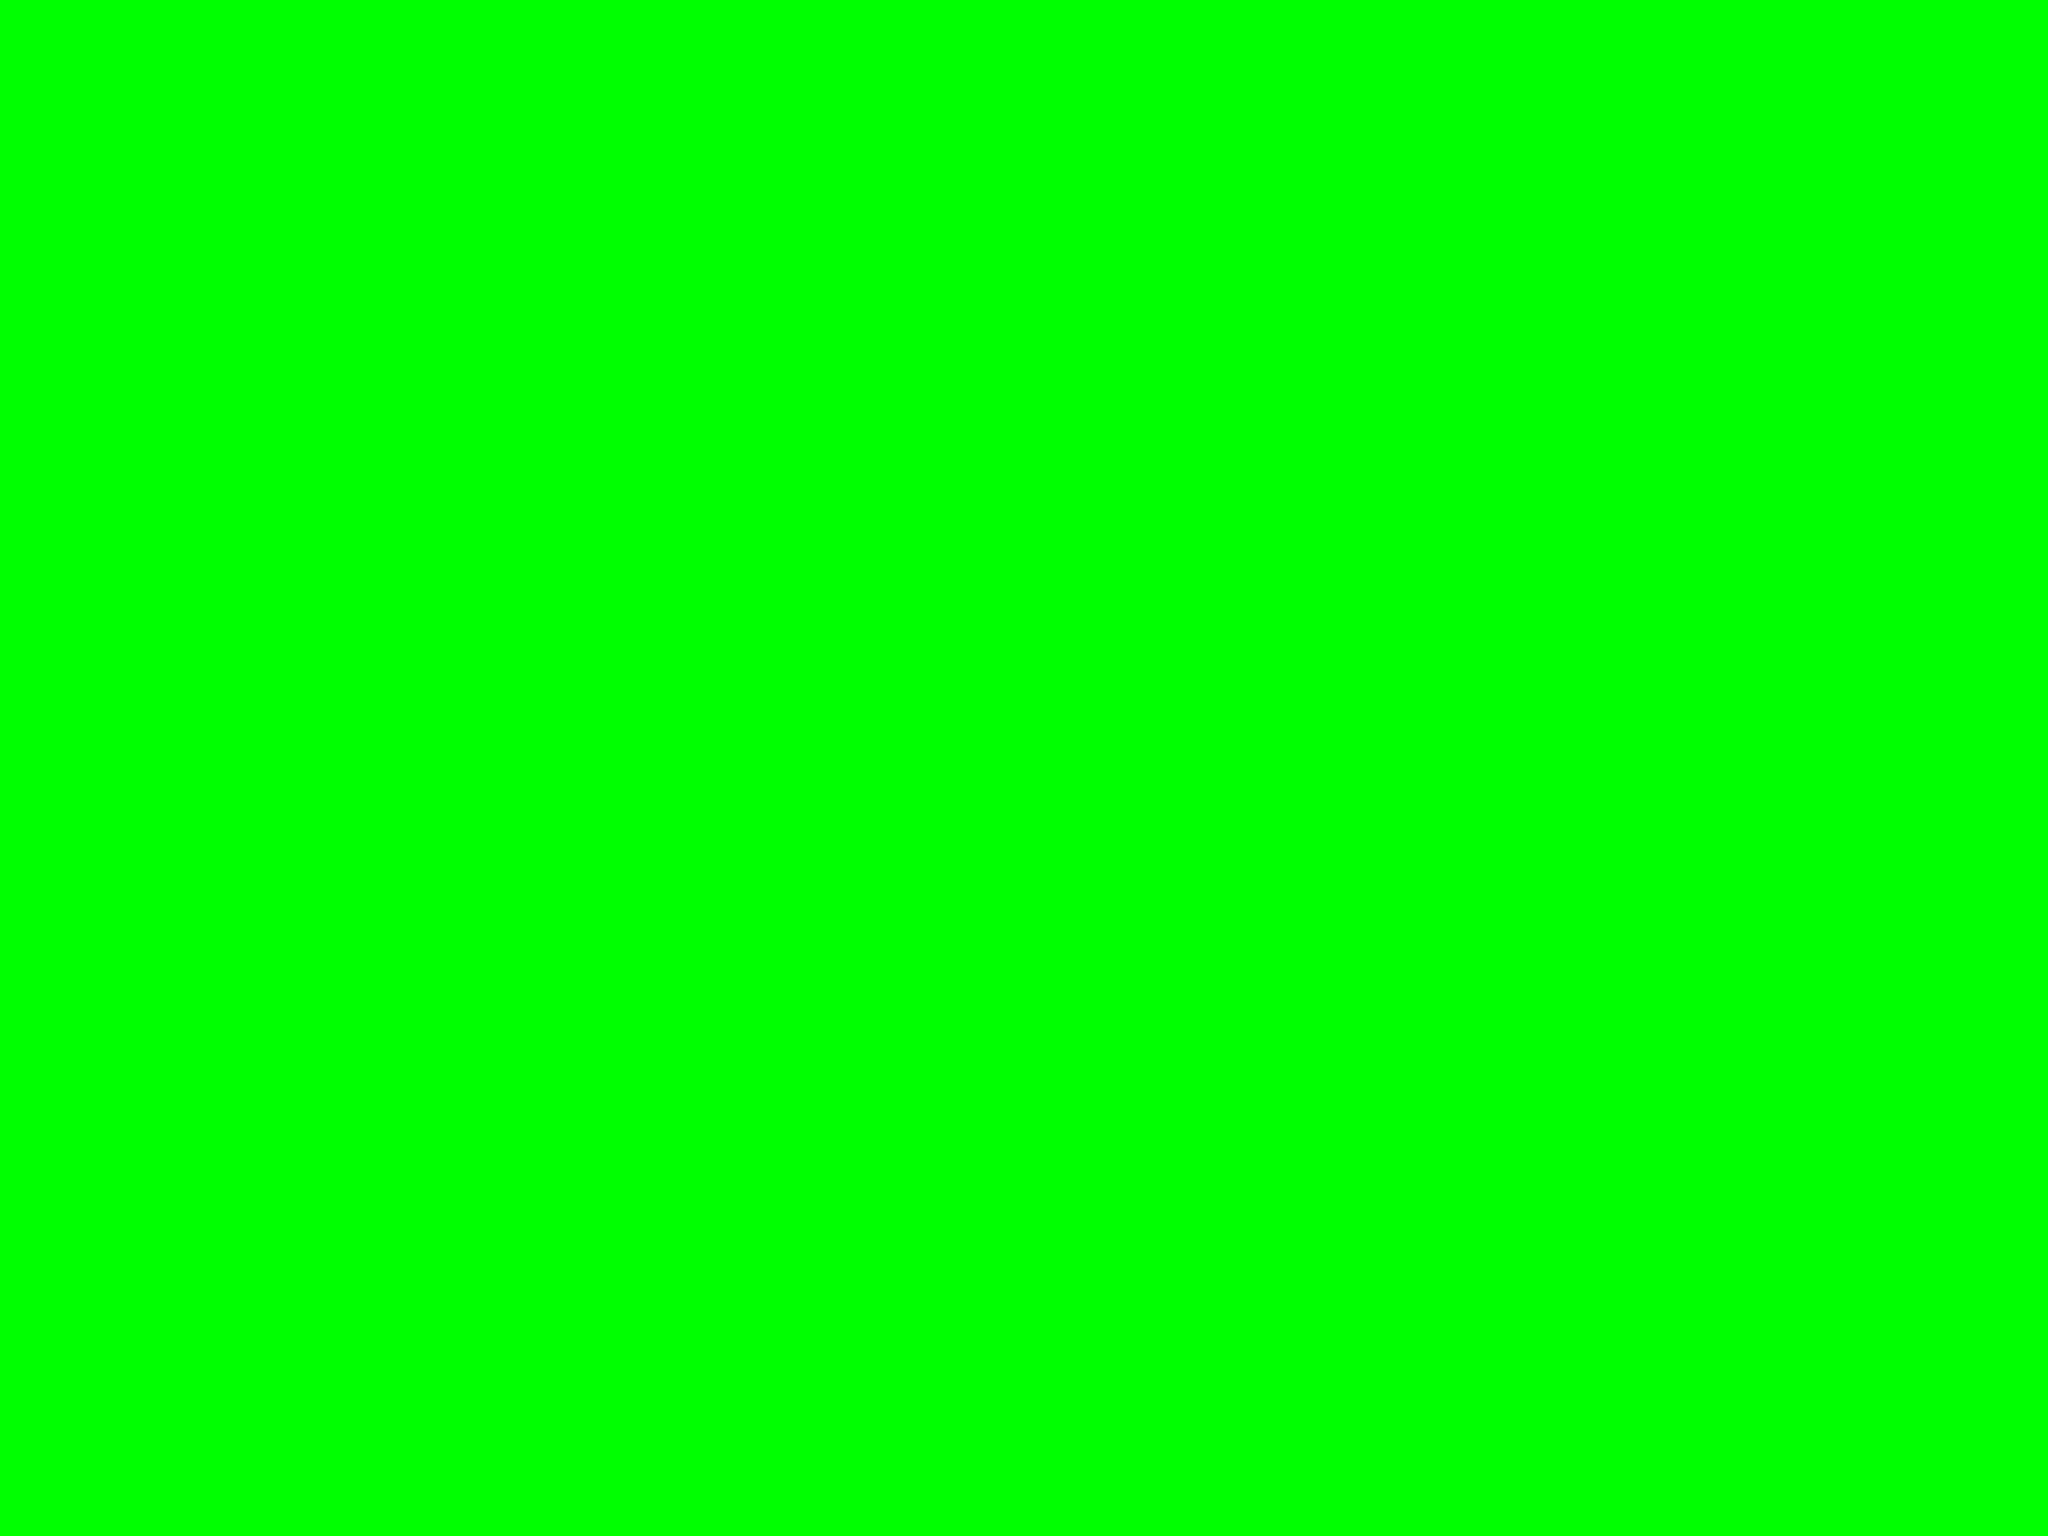 2048x1536 Lime Web Green Solid Color Background